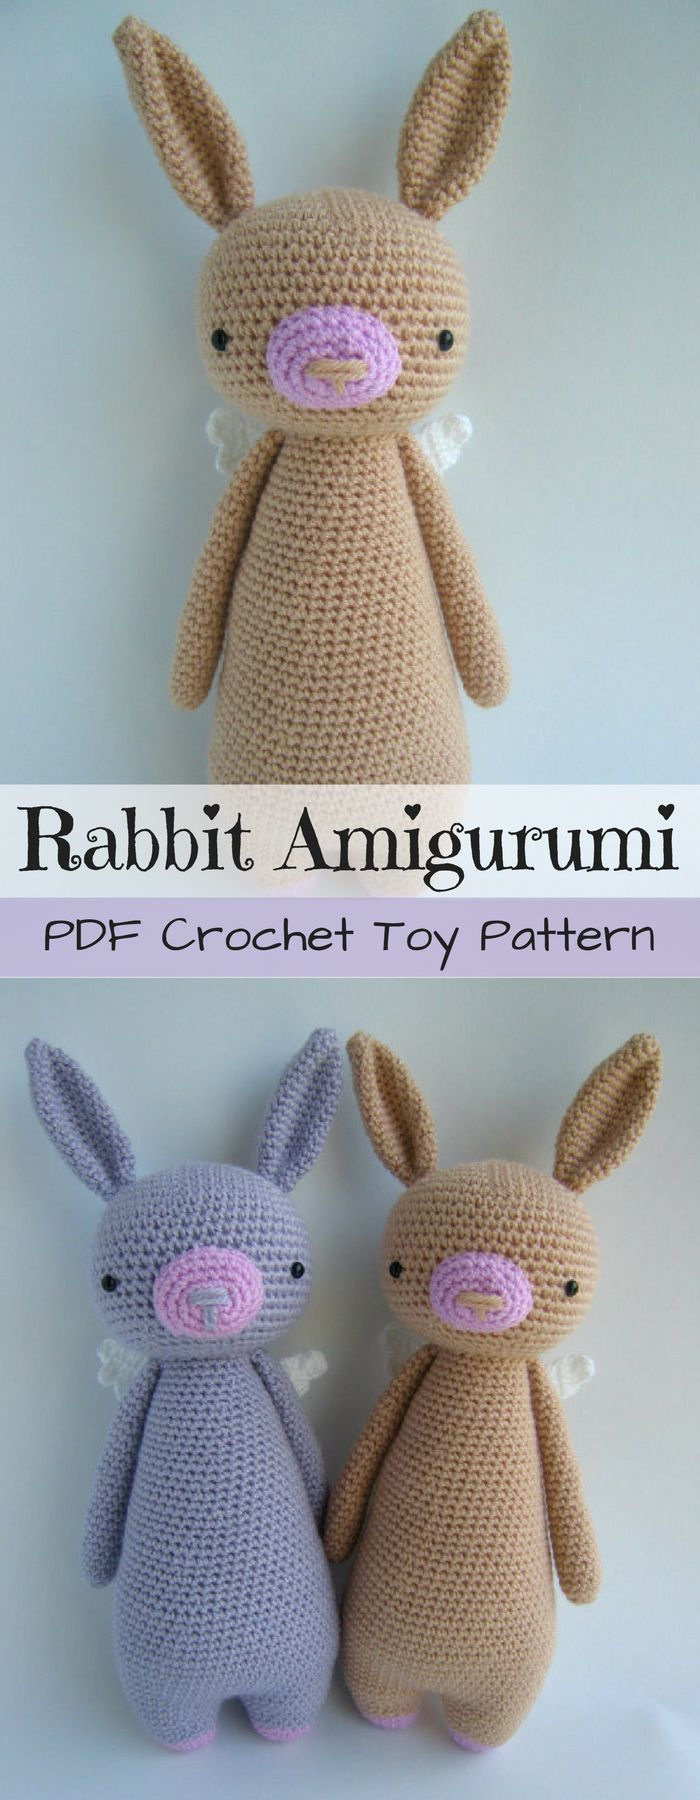 We knit the Easter bunny crochet Toys with our own hands, patterns, video, MK